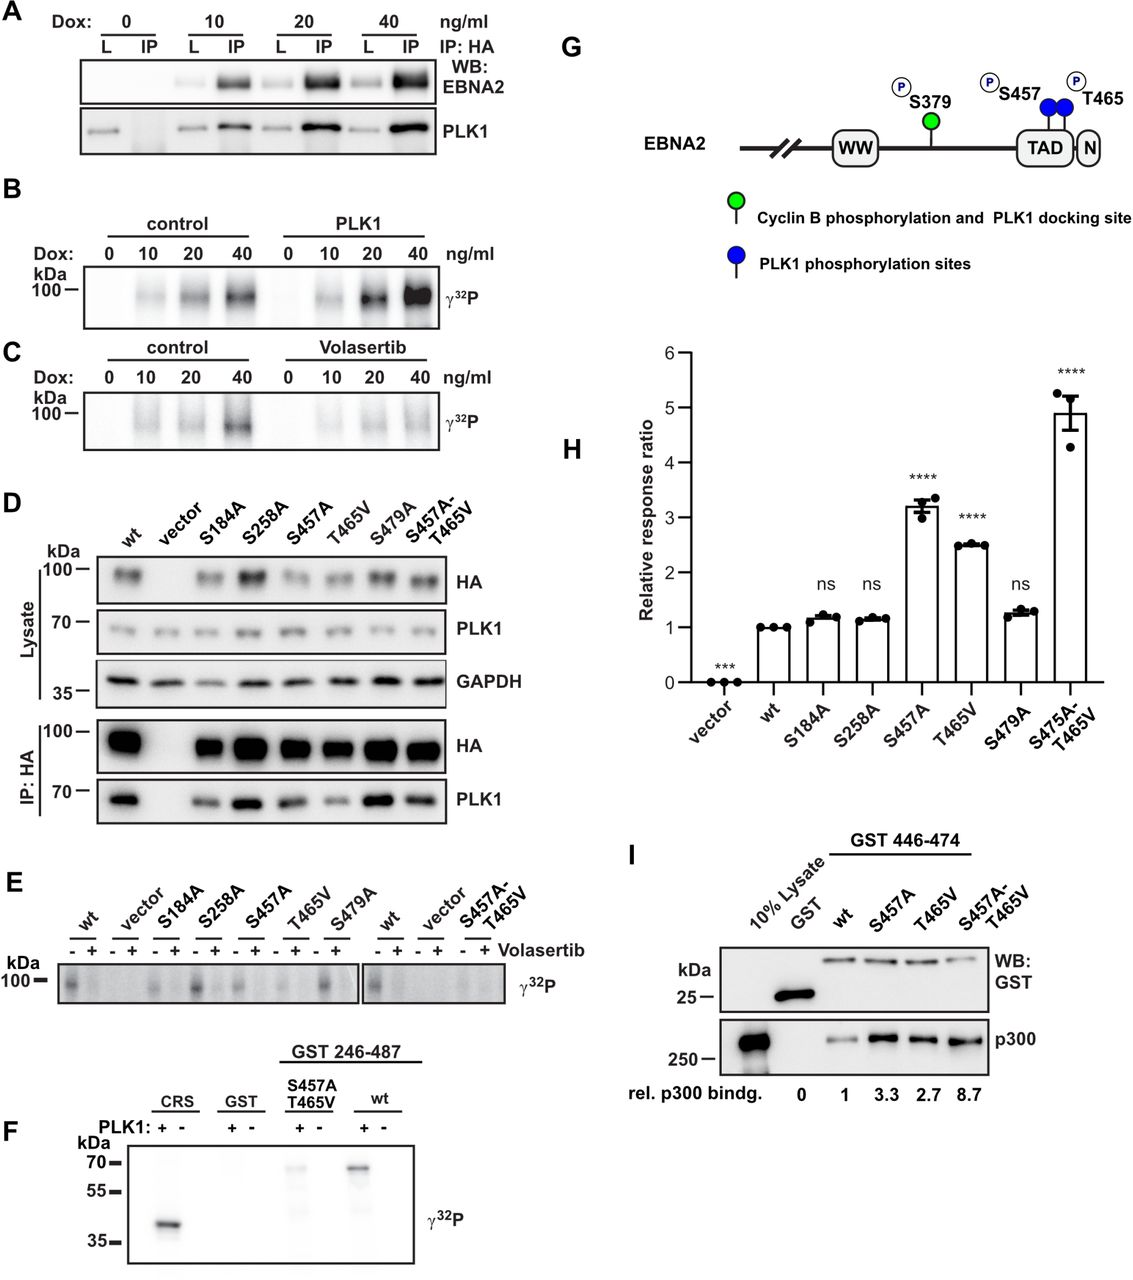 EBNA2/PLK1 phosphorylation-dependent complex formation Transfection and immunoprecipitation of (A) HA-tagged or for smaller fragments (B) GFP-tagged EBNA2 fragments to co-precipitate endogenous PLK1. Total protein lysates and immunoprecipitates (IP) were analyzed by Western blotting (WB). (C) Schematic outline of EBNA2, its dimerization domains (END, DIM), the region used by CBF1 to recruit EBNA2 to DNA (WW), the C-terminal transactivation domain (TAD), the nuclear localization signal (N) and the EBNA2 fragments used to map the PLK1 docking site (UniProt ID: P12978.1). The panel on the right summarizes the results of the co-immunoprecipitations in (A) and (B). (D) Multiple sequence alignment (left) and superposition (right) of several phosphopeptides present in published crystal structures of PLK1 PBD (phosphorylated residues stained red). Crystal structures of the PBD in complex with peptides show that the positively charged groove of PBD docks in a similar mode to the negatively charged phosphopeptides. References for PDB ID: 1Q4K ( Cheng et al , 2003 ), 1UMW ( Elia et al. , 2003a ), 4E9C ( Śledź et al , 2012 ), 3C5L ( Yun et al , 2009 ), 3HIK ( Yun et al. , 2009 ), 5X3S ( Lee et al , 2018 ), 3Q1I ( Pavlovsky et al , 2012 ). Potential residues of EBNA2, which might be a PBD docking site, are listed below. (E) Immunoprecipitation of HA-tagged EBNA2 mutant ST266AV, TSS377VAA and SPSS467APAA using HA-specific antibodies. (F) ITC thermogram of PLK1 PBD titrated with the peptide PNTSSPS or the phosphopeptide PNTSpSPS of EBNA2. (G) GST-pulldown of PLK1 from total cellular extracts using Cyclin B/CDK1 phosphorylated GST-EBNA2 region 342-422. (H) Co-immunoprecipitation of transfected EBNA2 wt or S379A and endogenous PLK1.